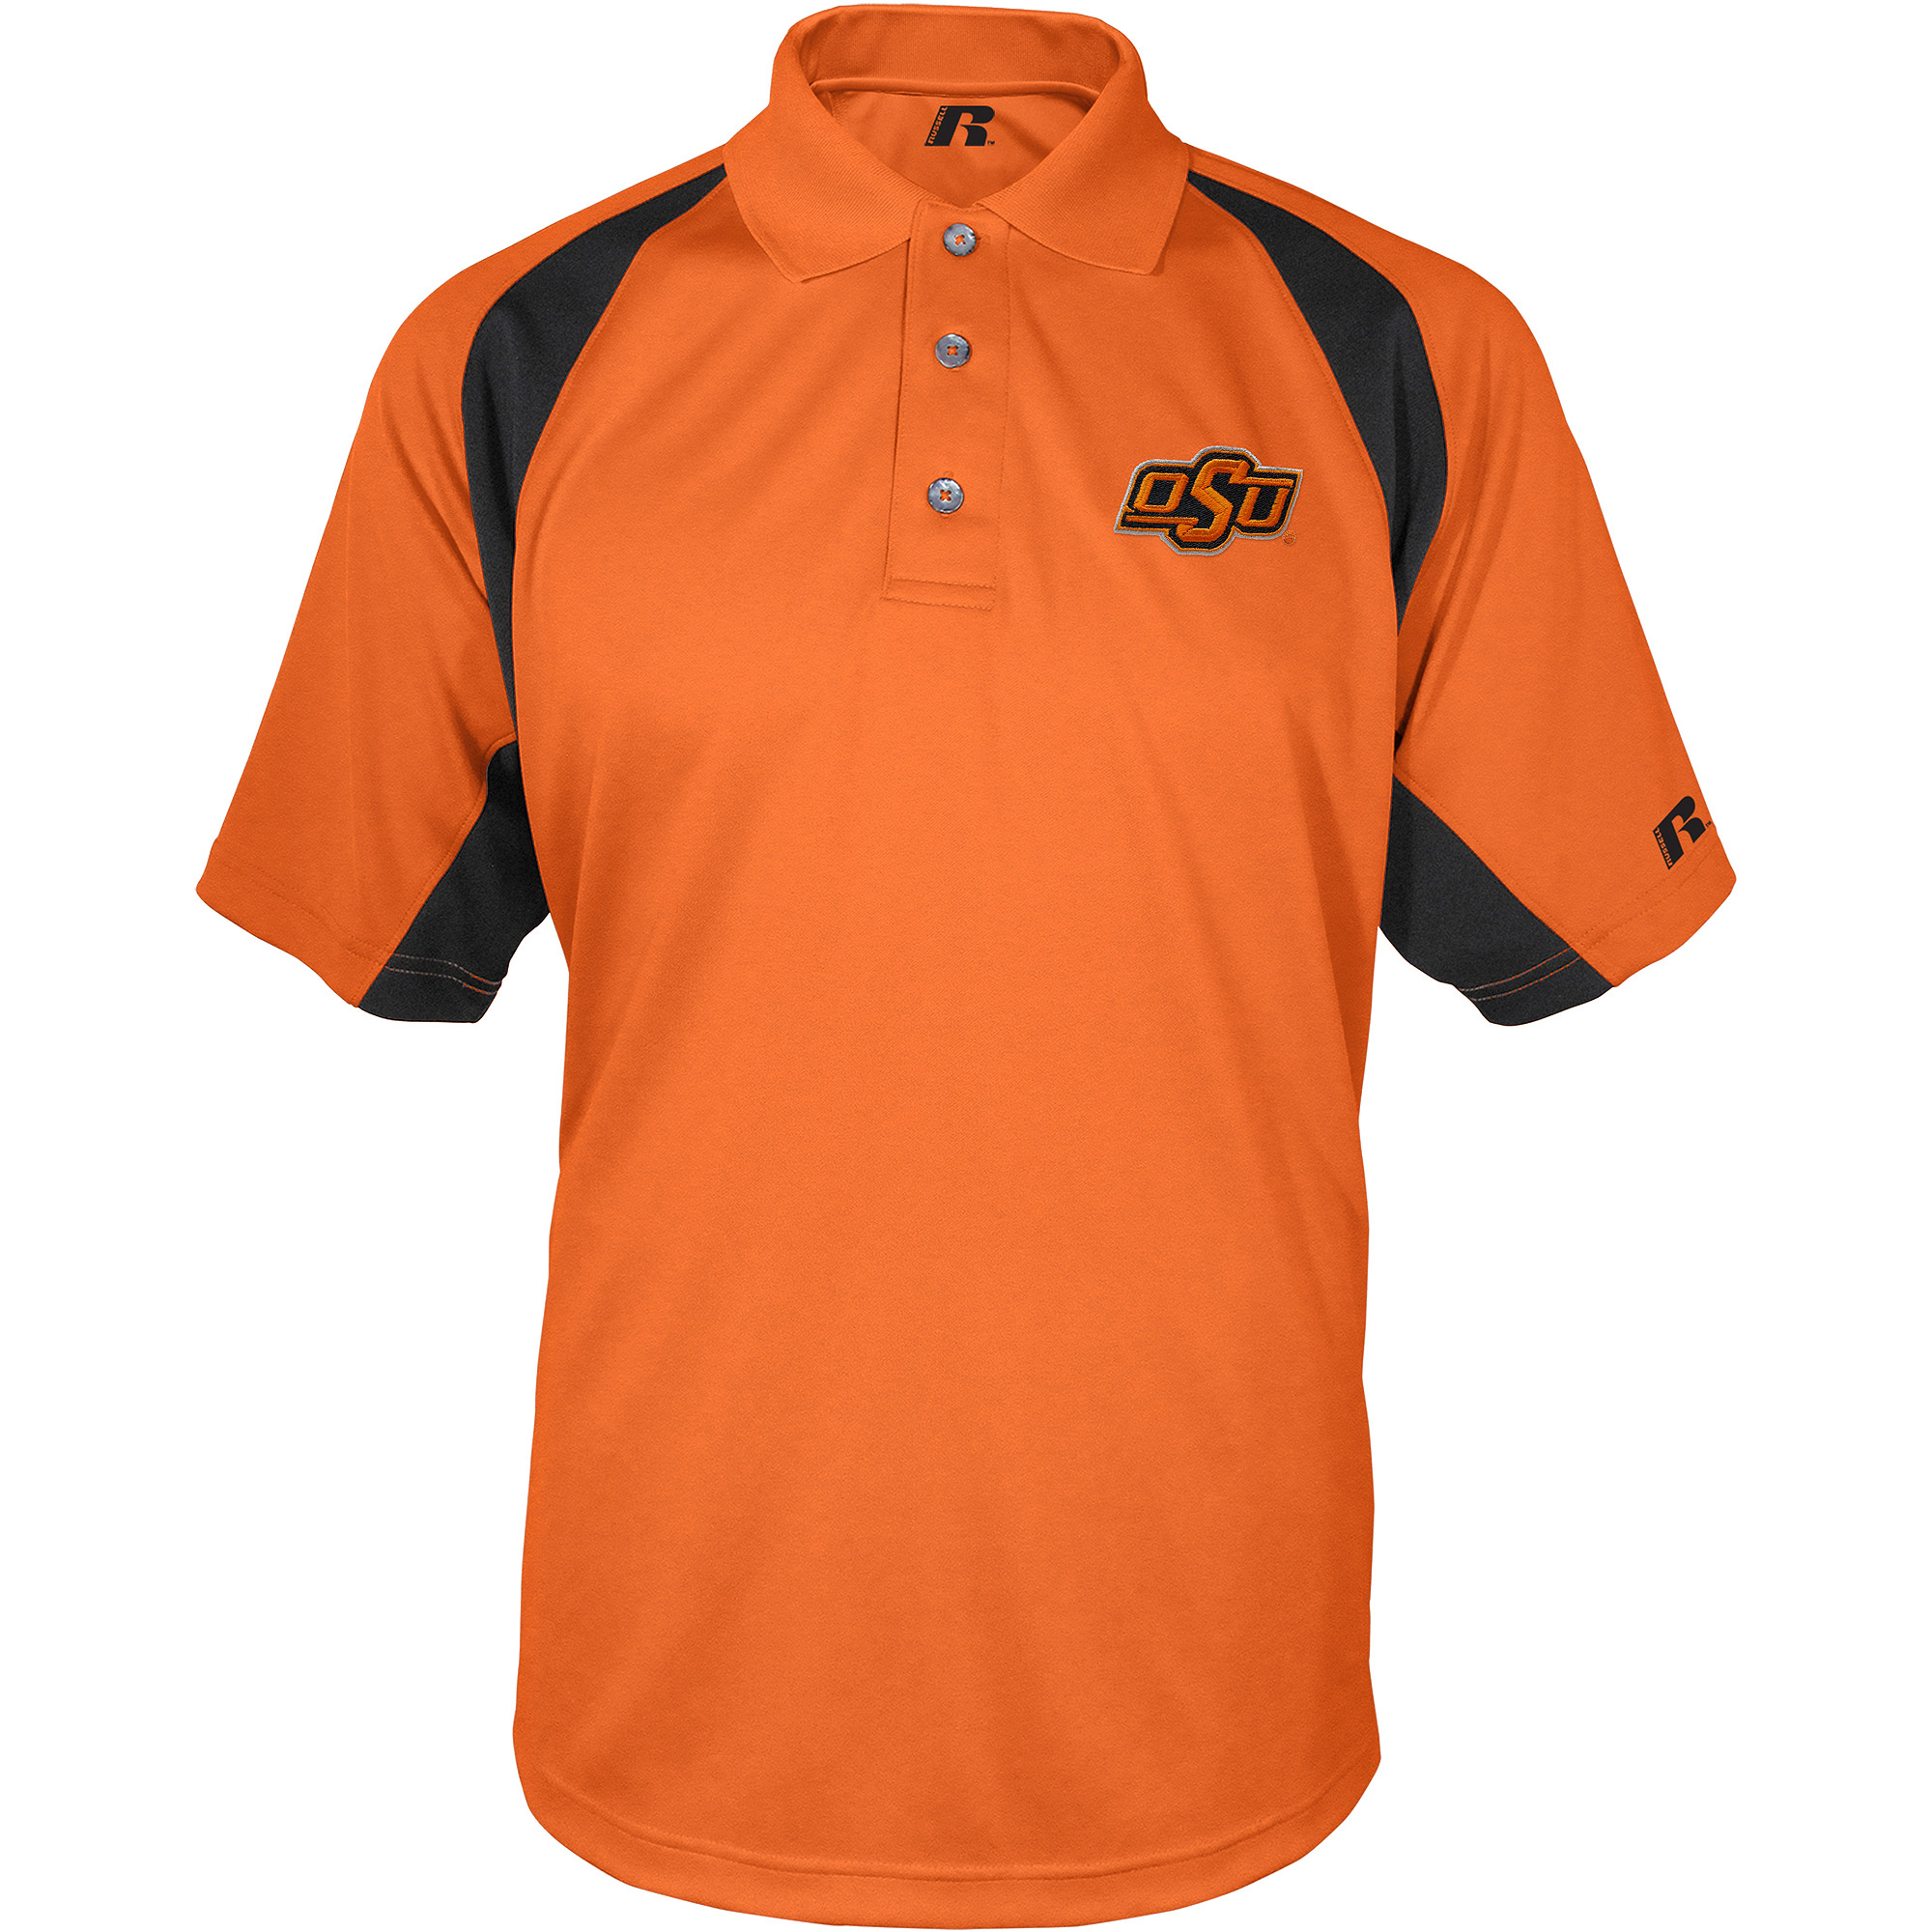 Russell NCAA Oklahoma State Cowboys, Men's Synthetic Polo